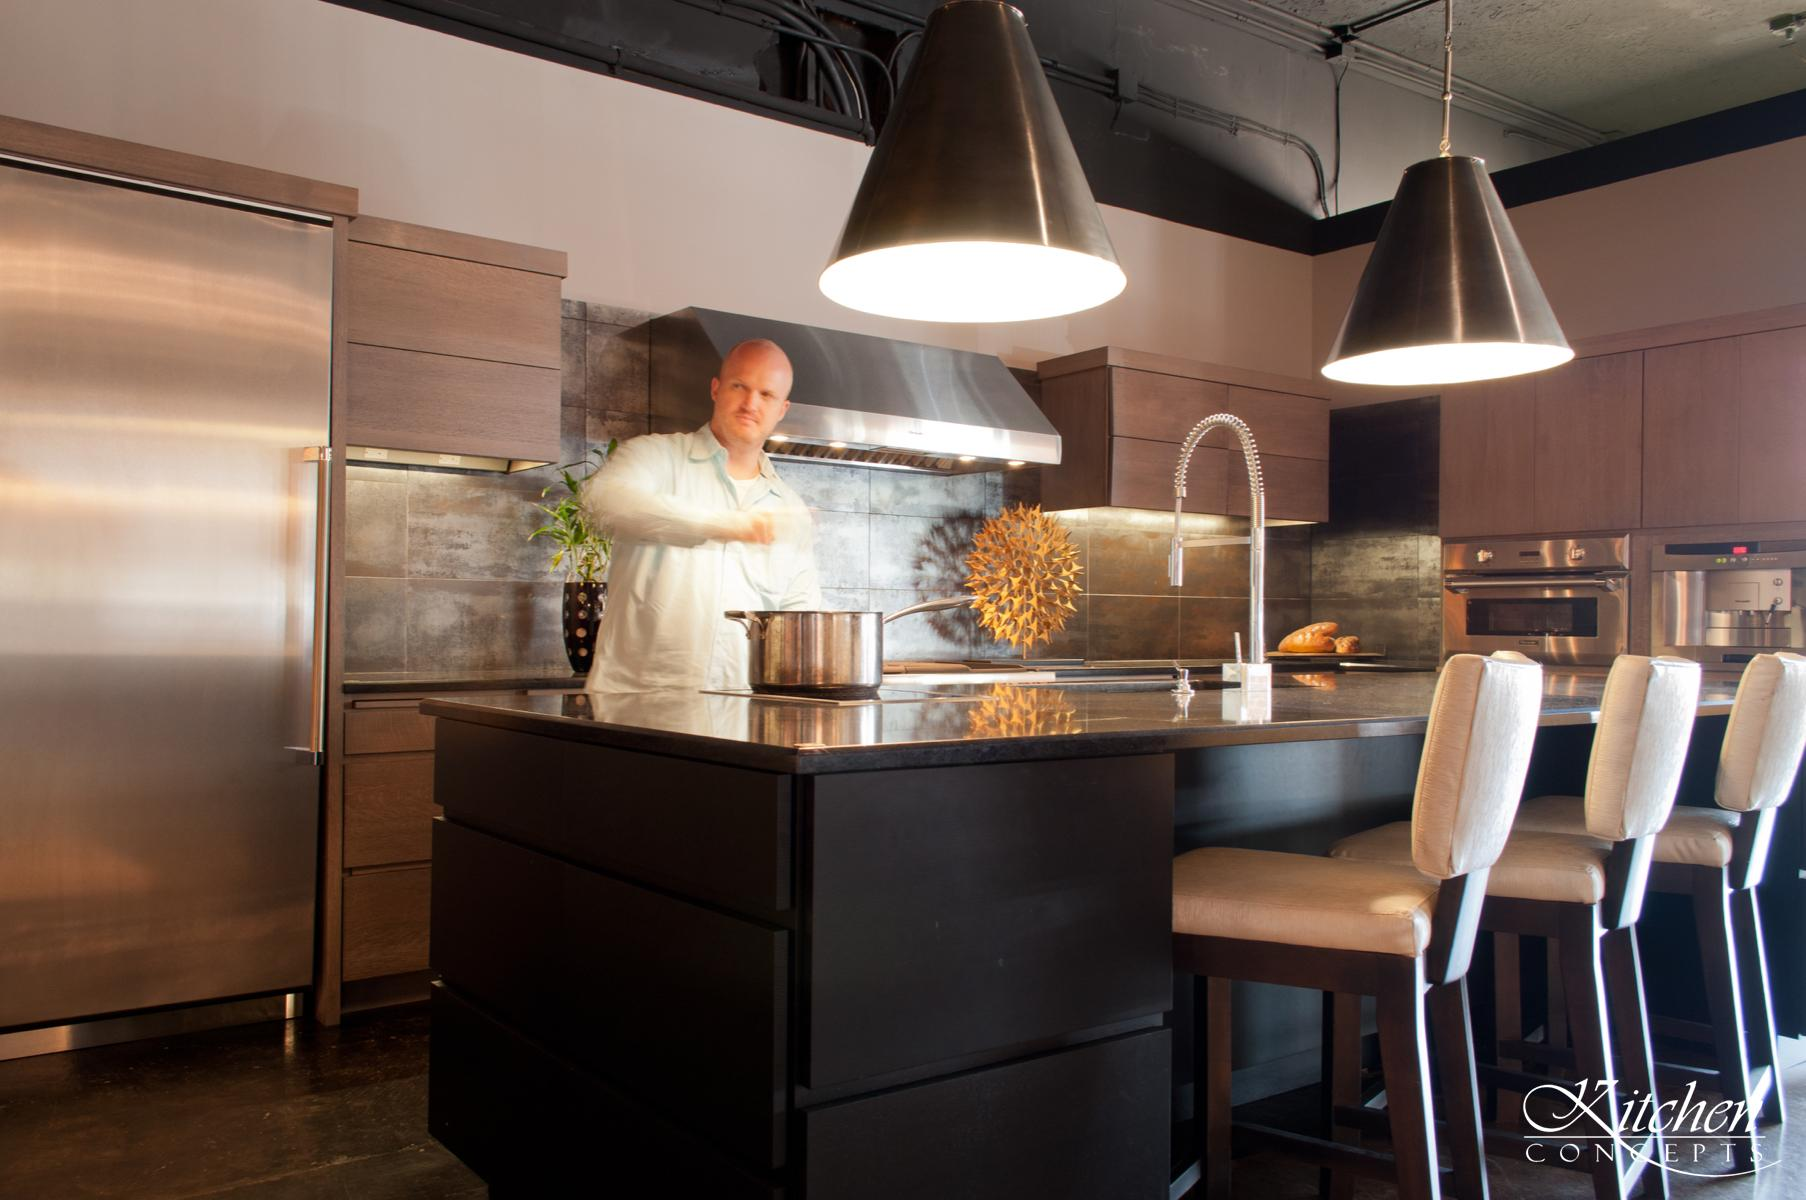 The Kitchen Concepts Man'Chen (The Man's Kitchen)